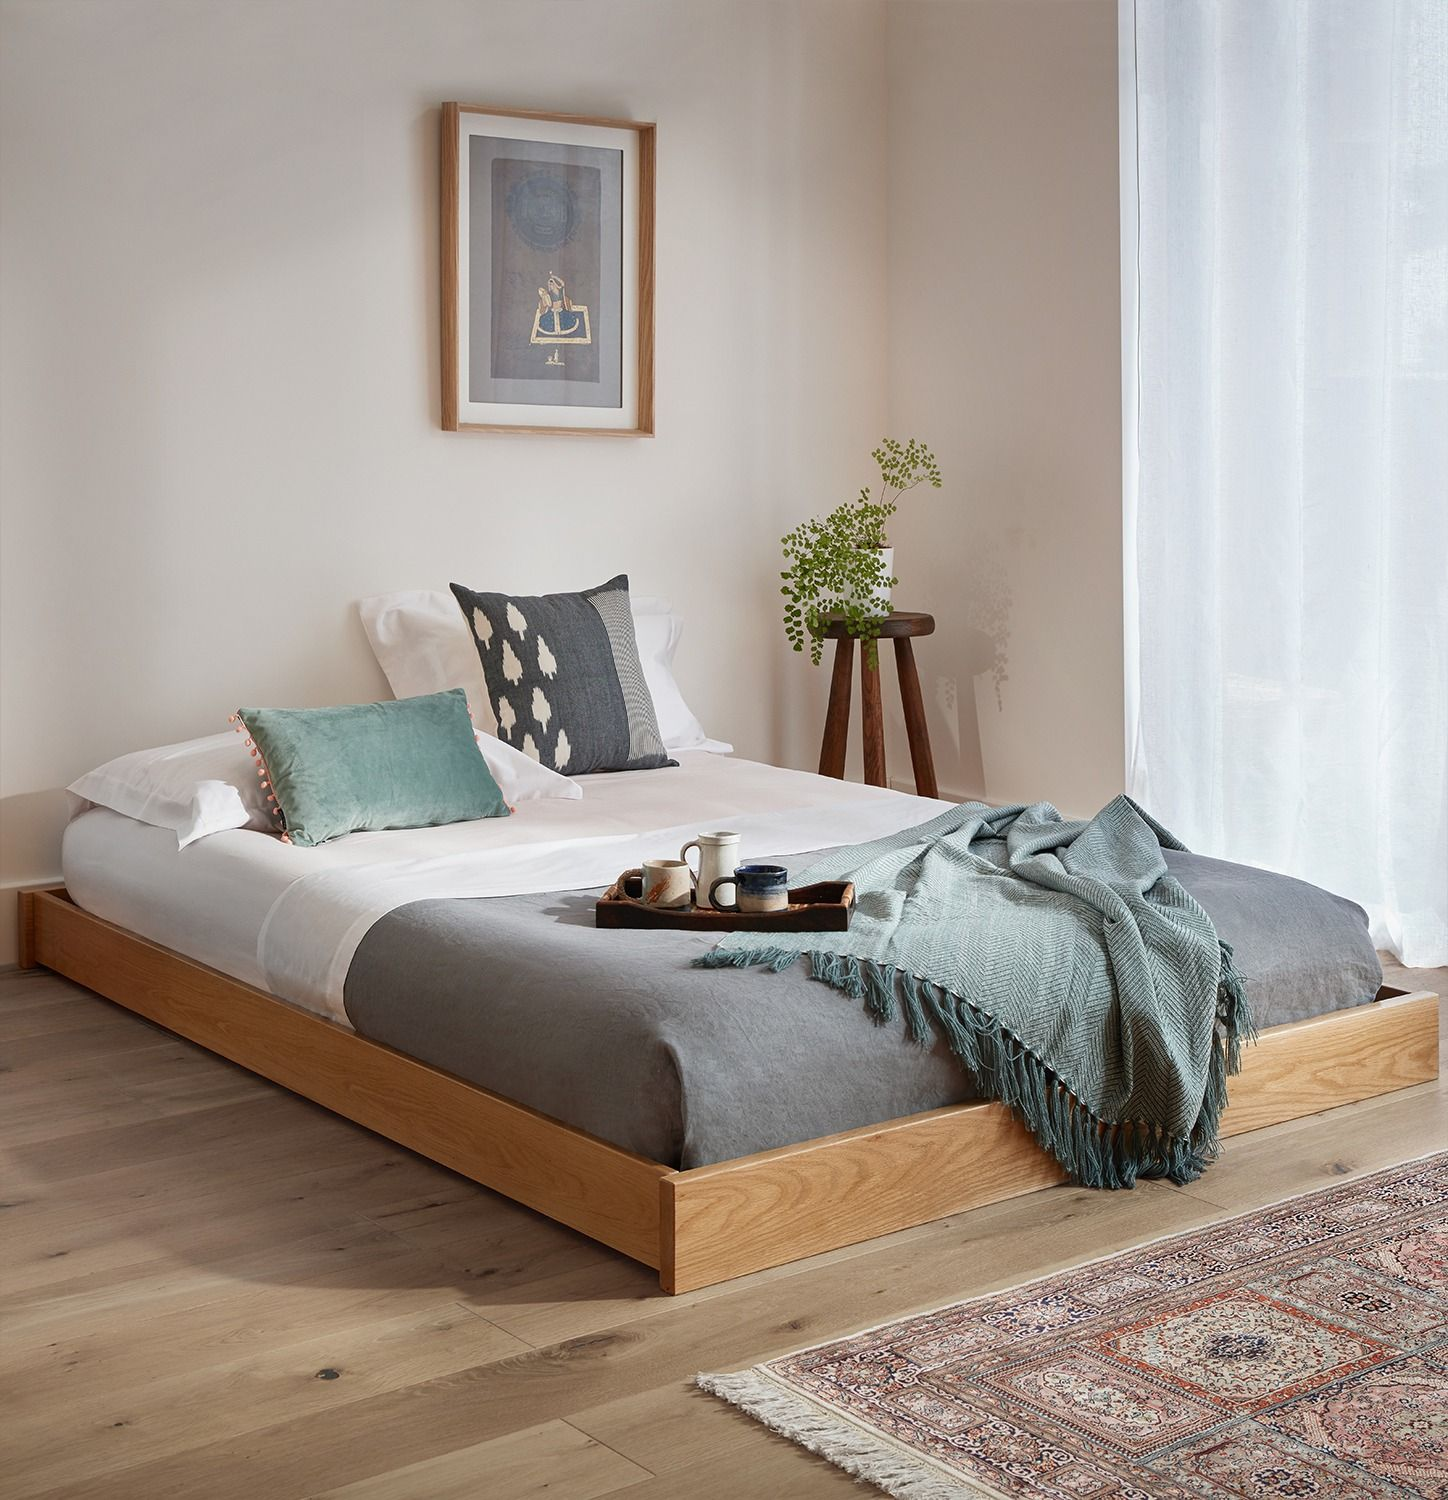 Low Enkel Platform Bed (No Headboard) (с изображениями)